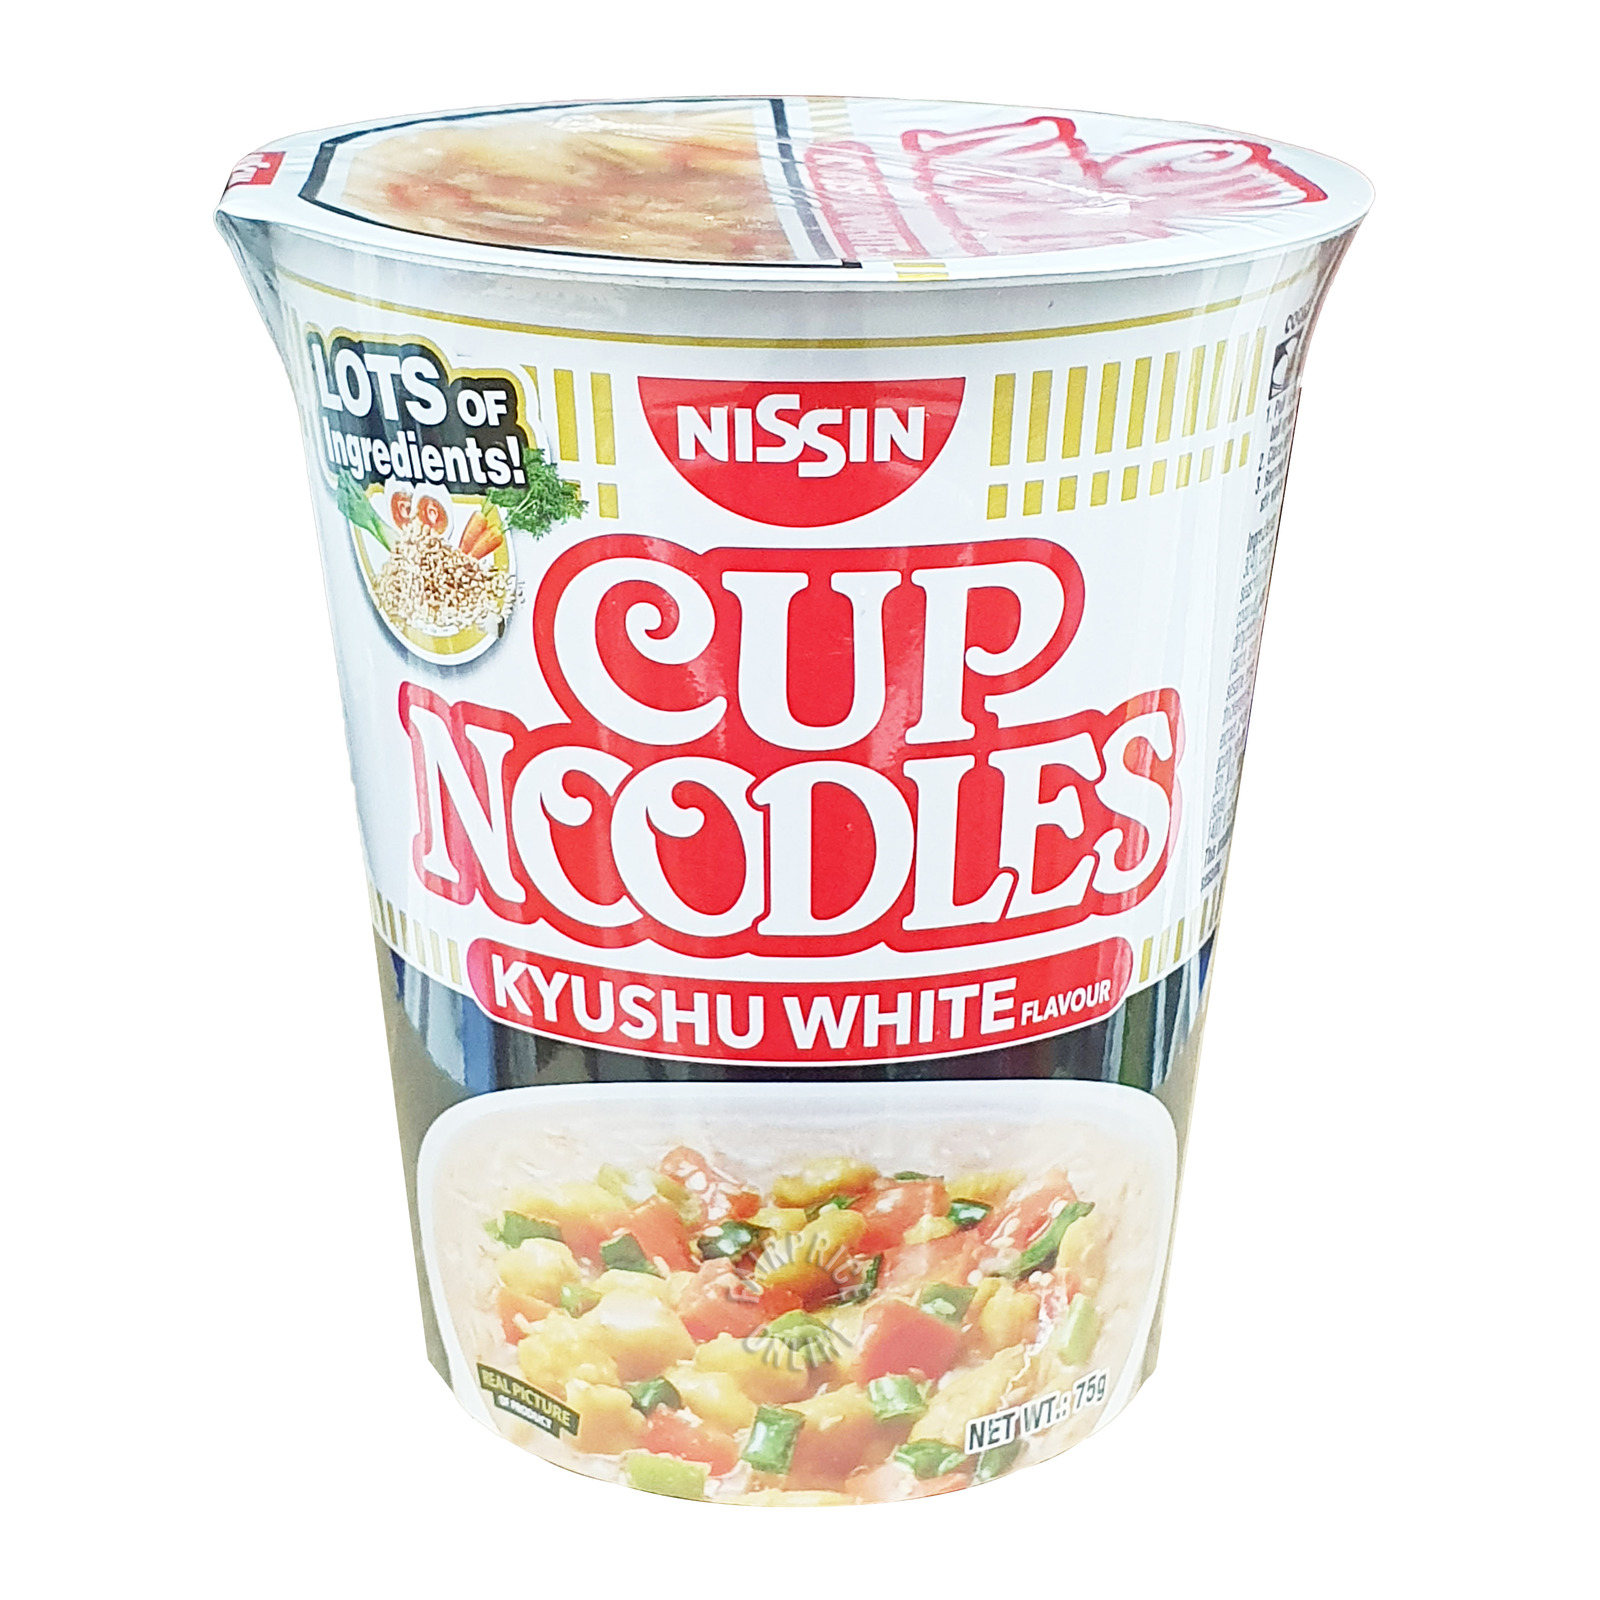 Nissin Instant Cup Noodles - Kyushu White